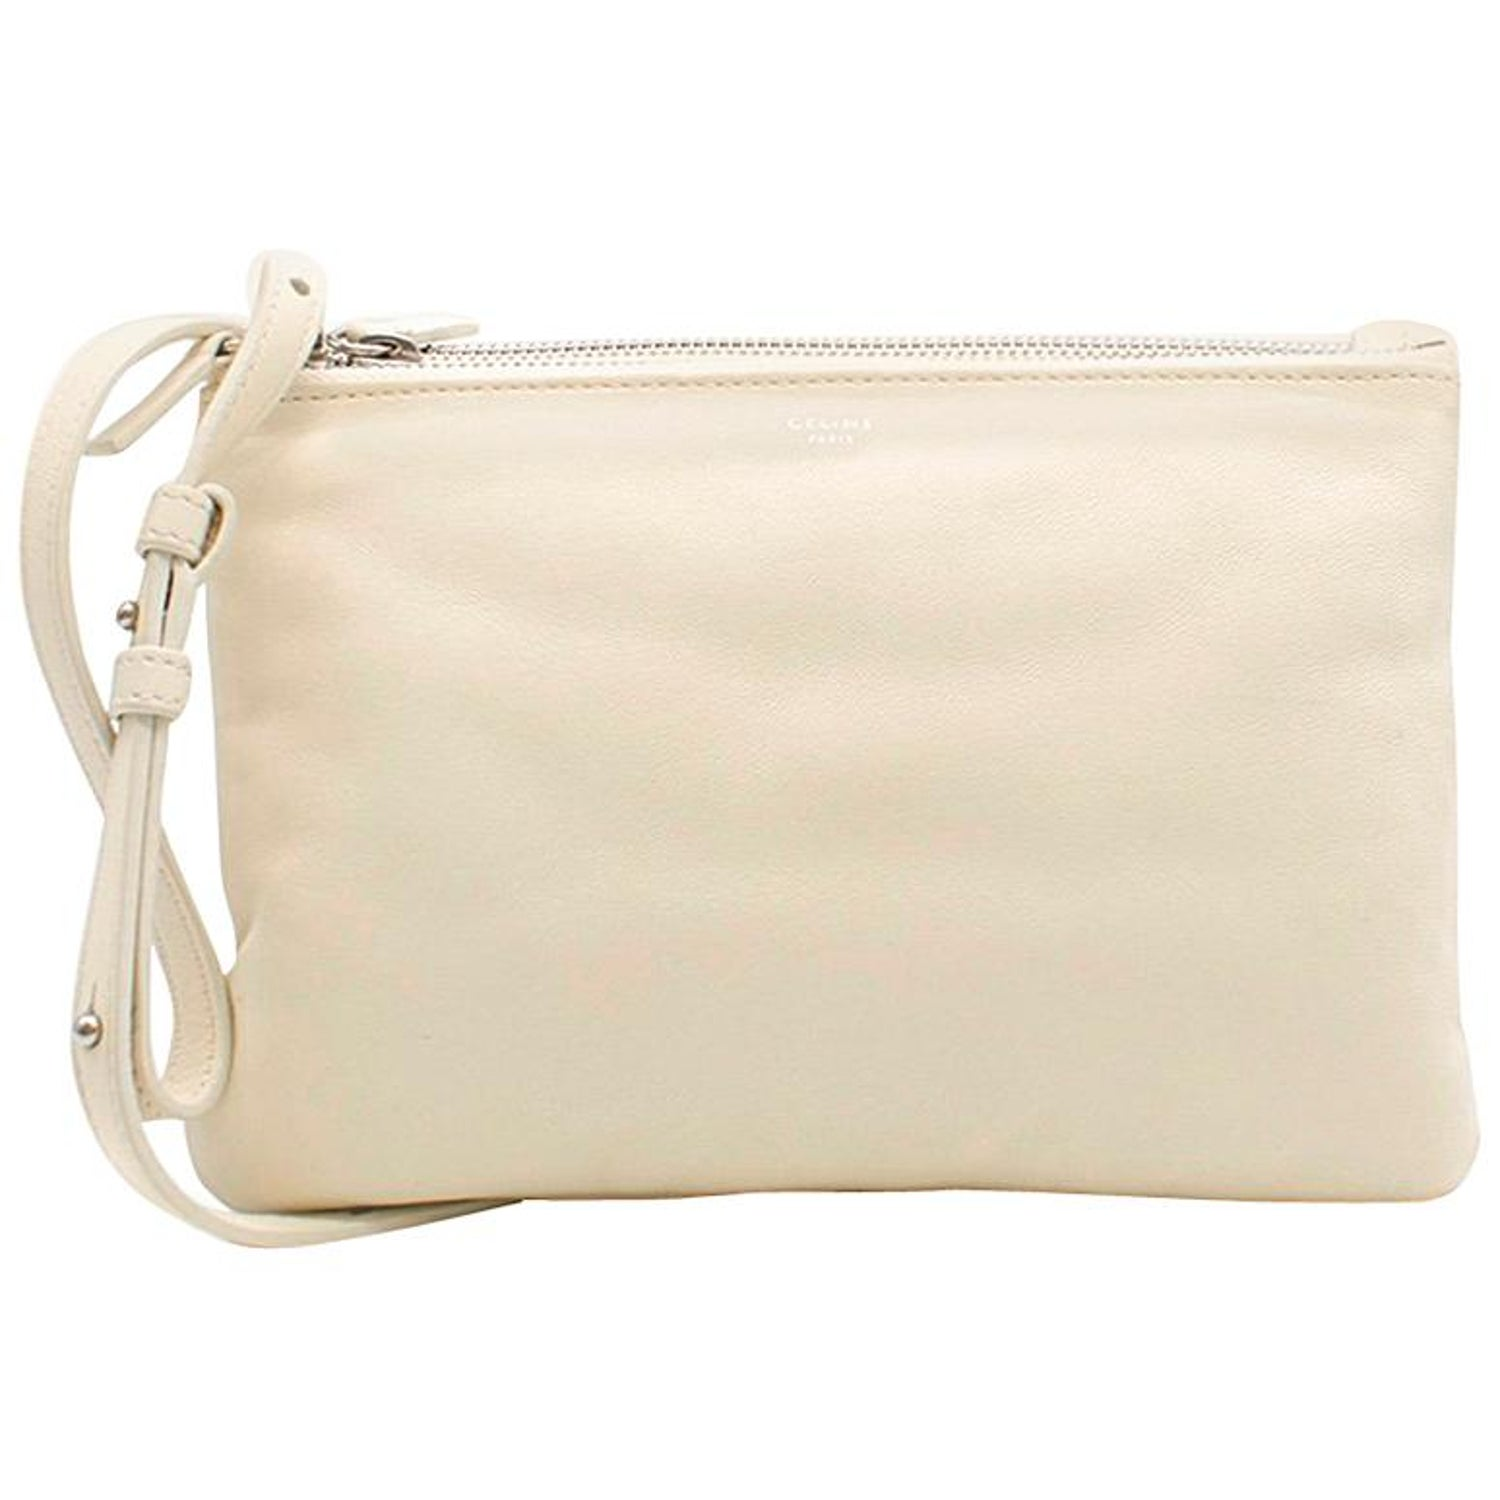 89649be3cdfb Celine Trio Ivory Leather Cross-Body Bag at 1stdibs